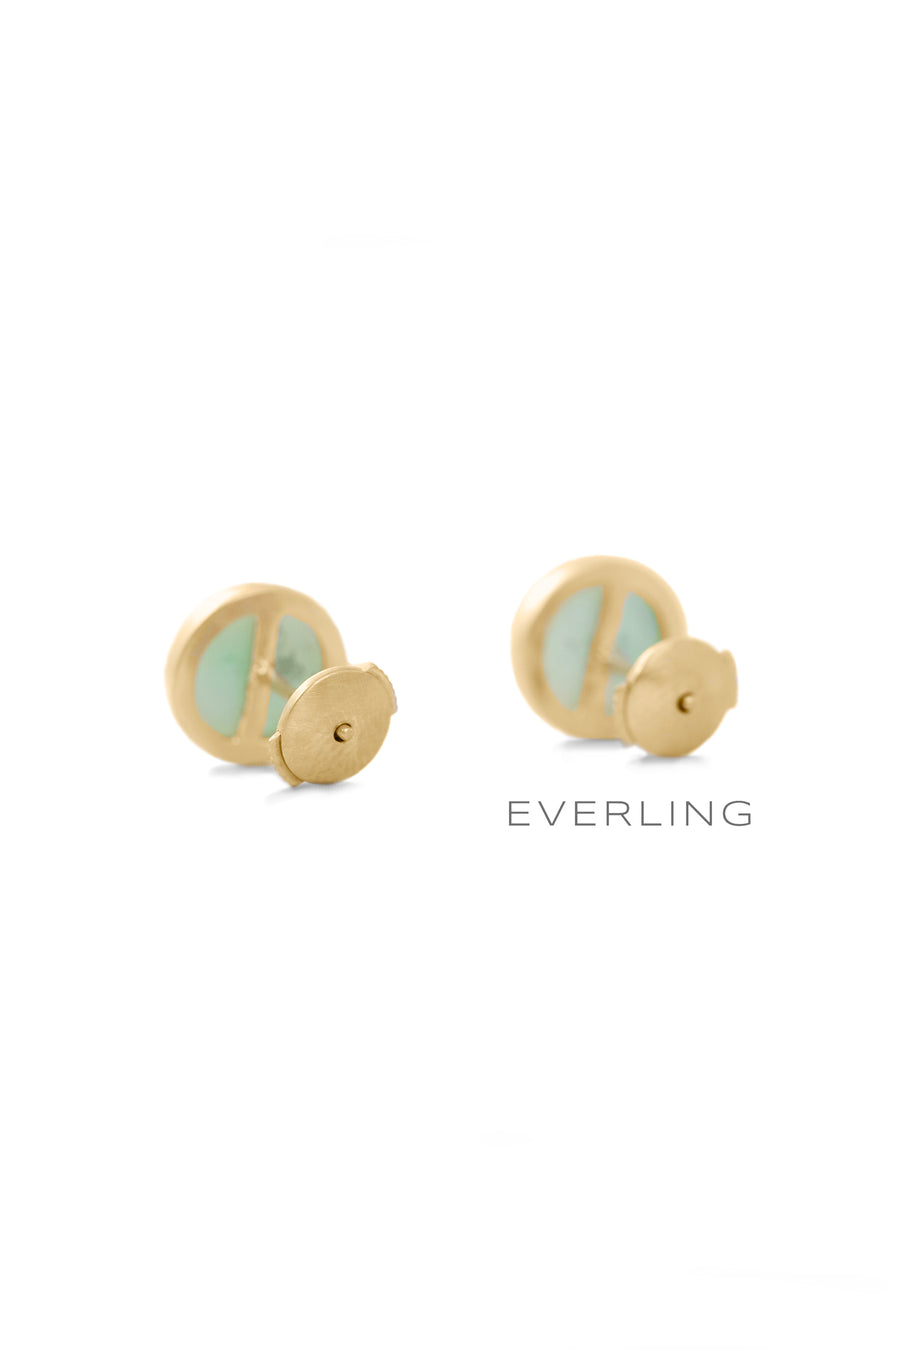 Recycled 18K Yellow Gold Round Bezel Stud Earrings with Up-cycled Jade. www.EverlingJewelry.com